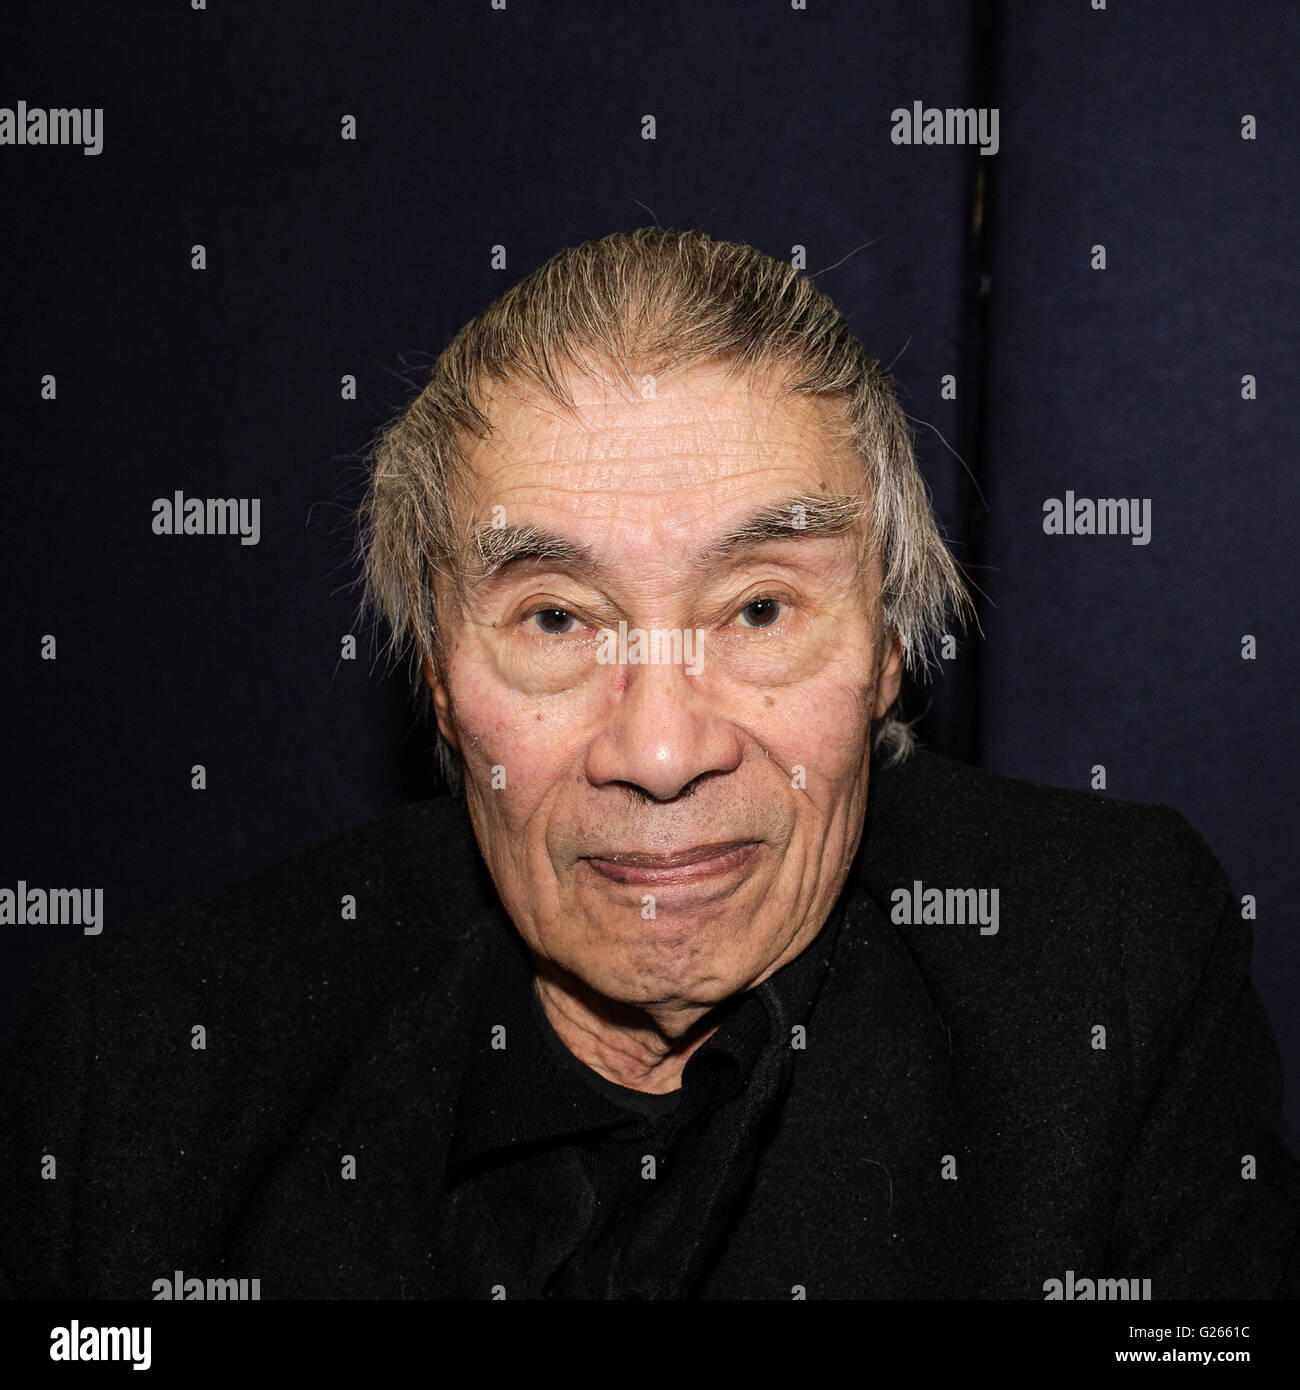 burt kwouk ageburt kwouk imdb, burt kwouk grave, burt kwouk cato, burt kwouk family, burt kwouk caroline tebbs, burt kwouk wife, burt kwouk net worth, burt kwouk interview, burt kwouk movies, burt kwouk death, burt kwouk peter sellers, burt kwouk james bond, burt kwouk movies and tv shows, burt kwouk films, burt kwouk pointless, burt kwouk age, burt kwouk entwistle, burt kwouk quotes, burt kwouk advert, burt kwouk bond